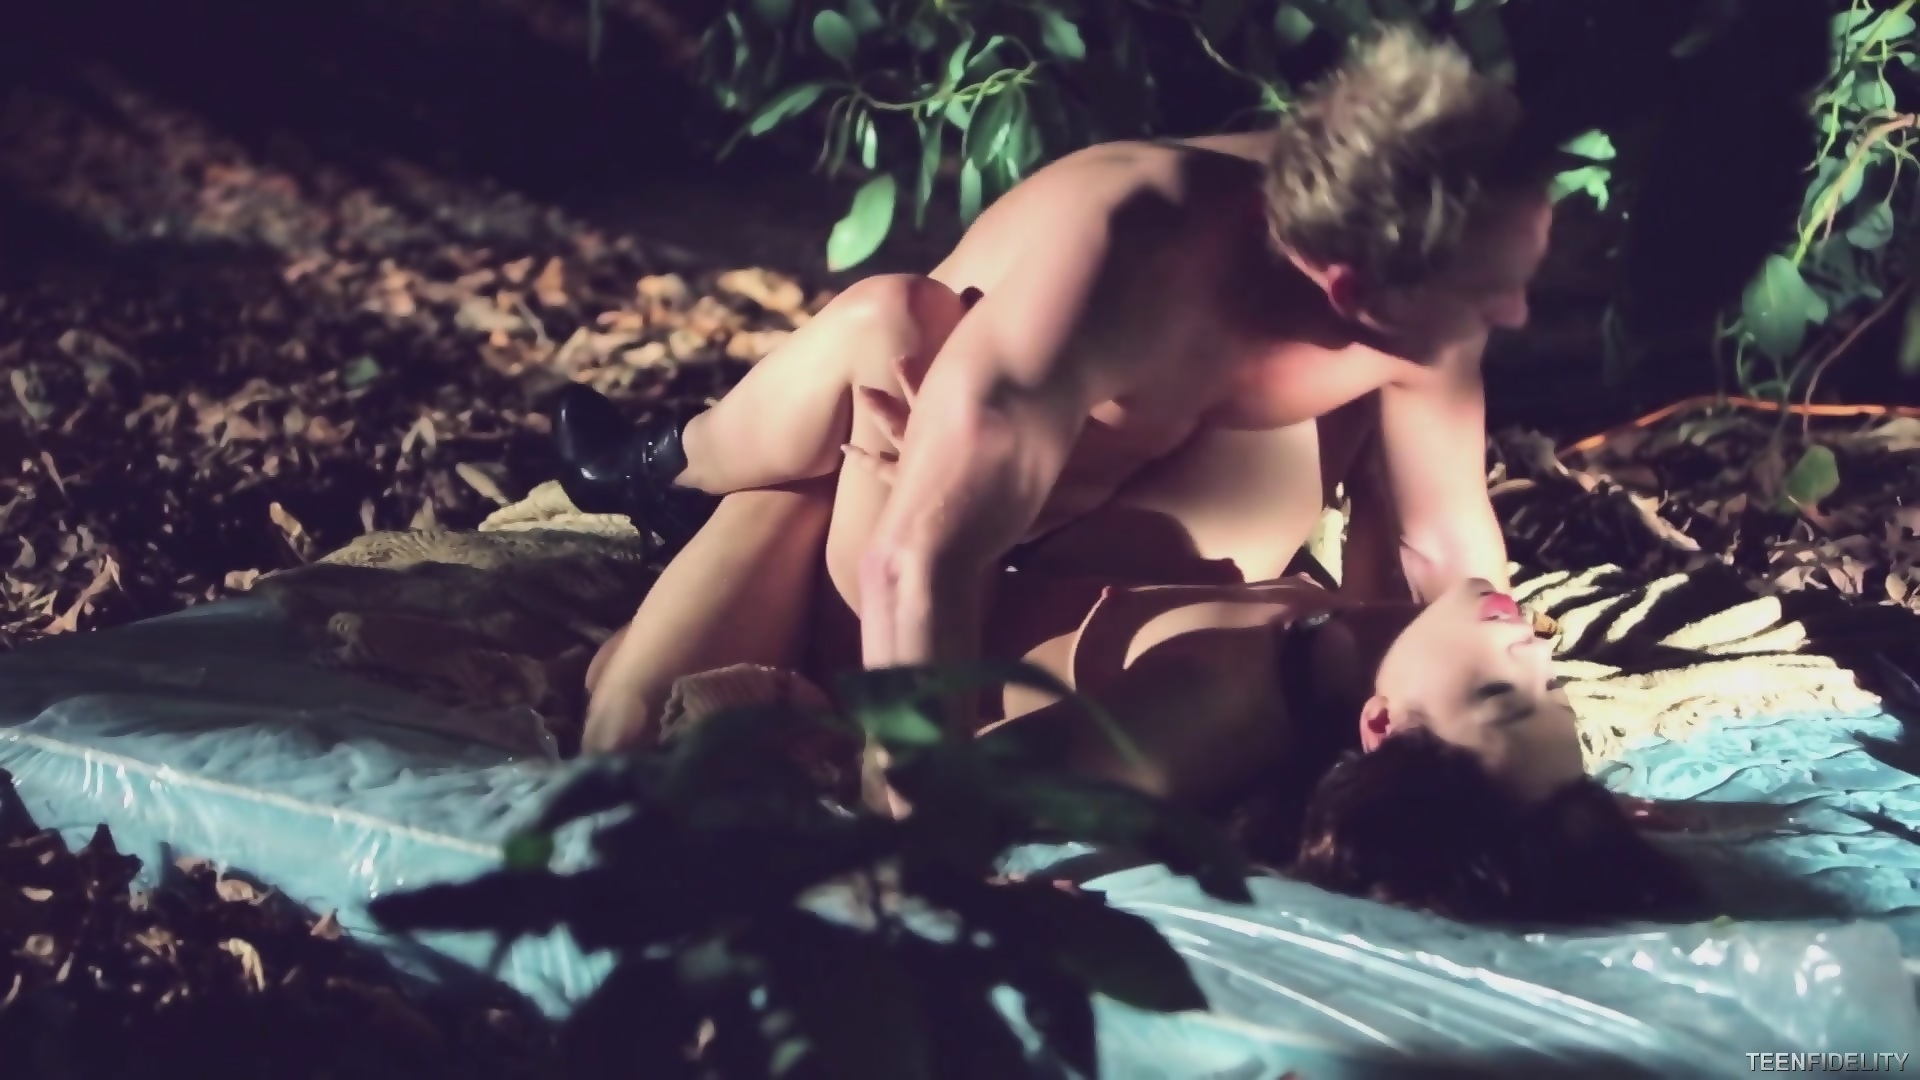 Into the forest sex scene